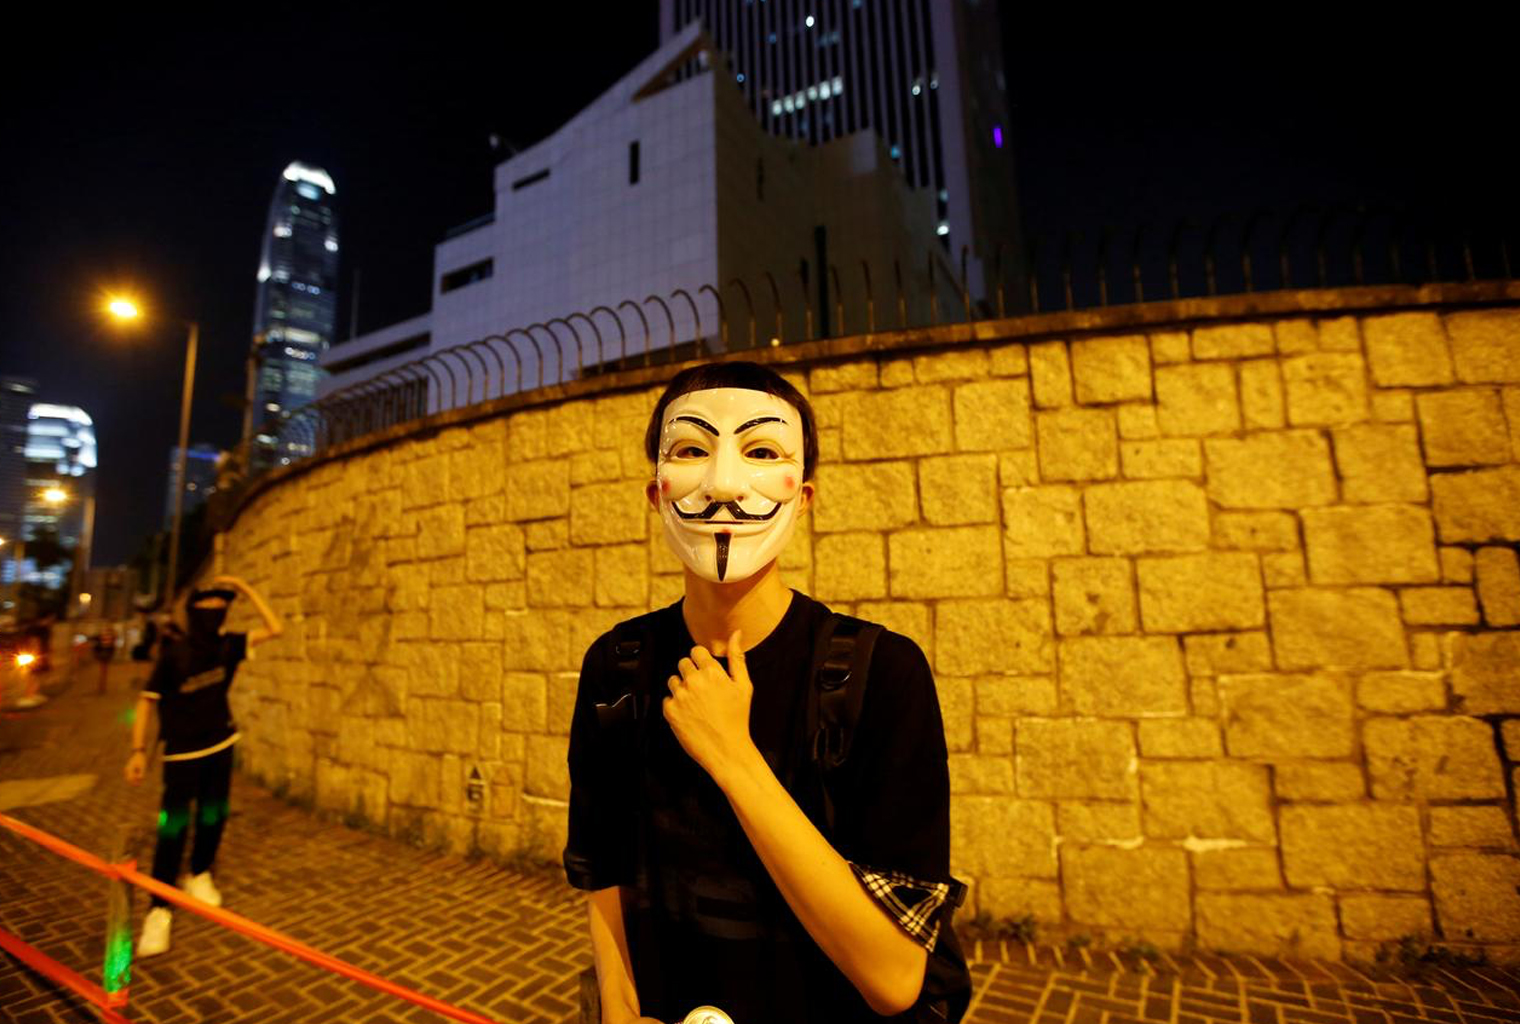 Protesters Wield Tools of Freedom as Hong Kong Imposes Dictatorship